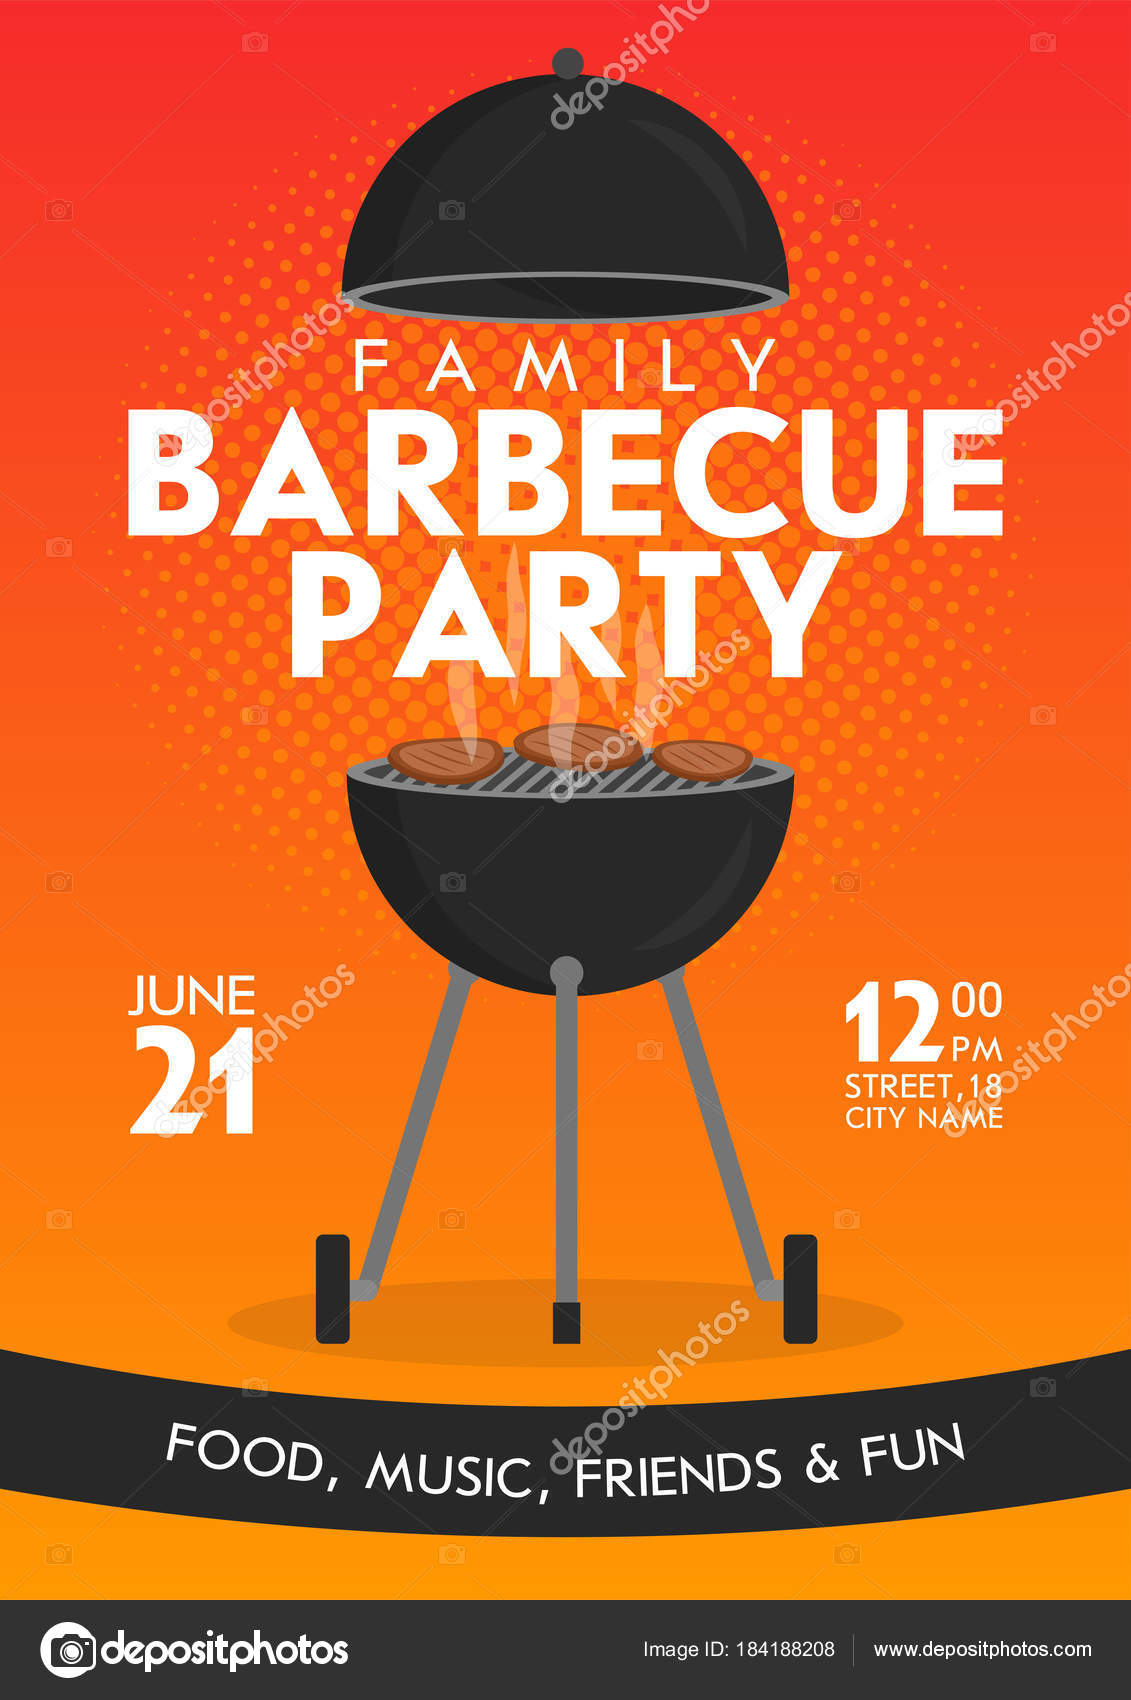 lovely vector barbecue party invitation design template set trendy